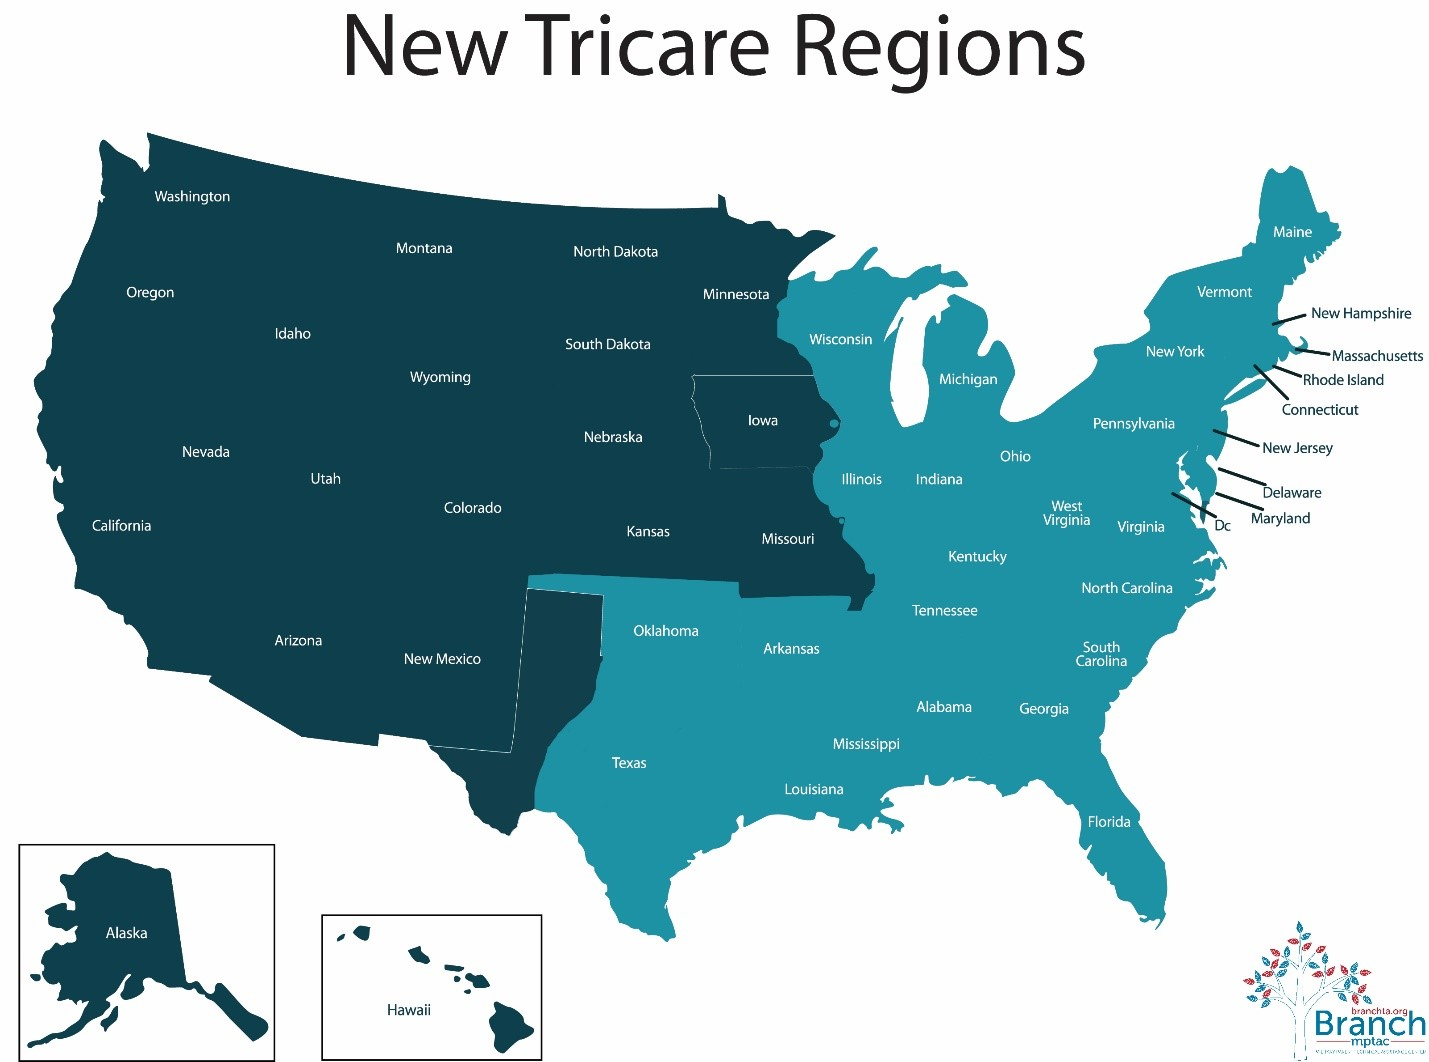 TRICARE: Healthcare for Military Families - Military Parent ... on map of delta dental regions, map of dod regions, map of ohio medicaid regions, map of health regions, map of medicare regions, map of cigna healthcare regions, map of aetna regions,